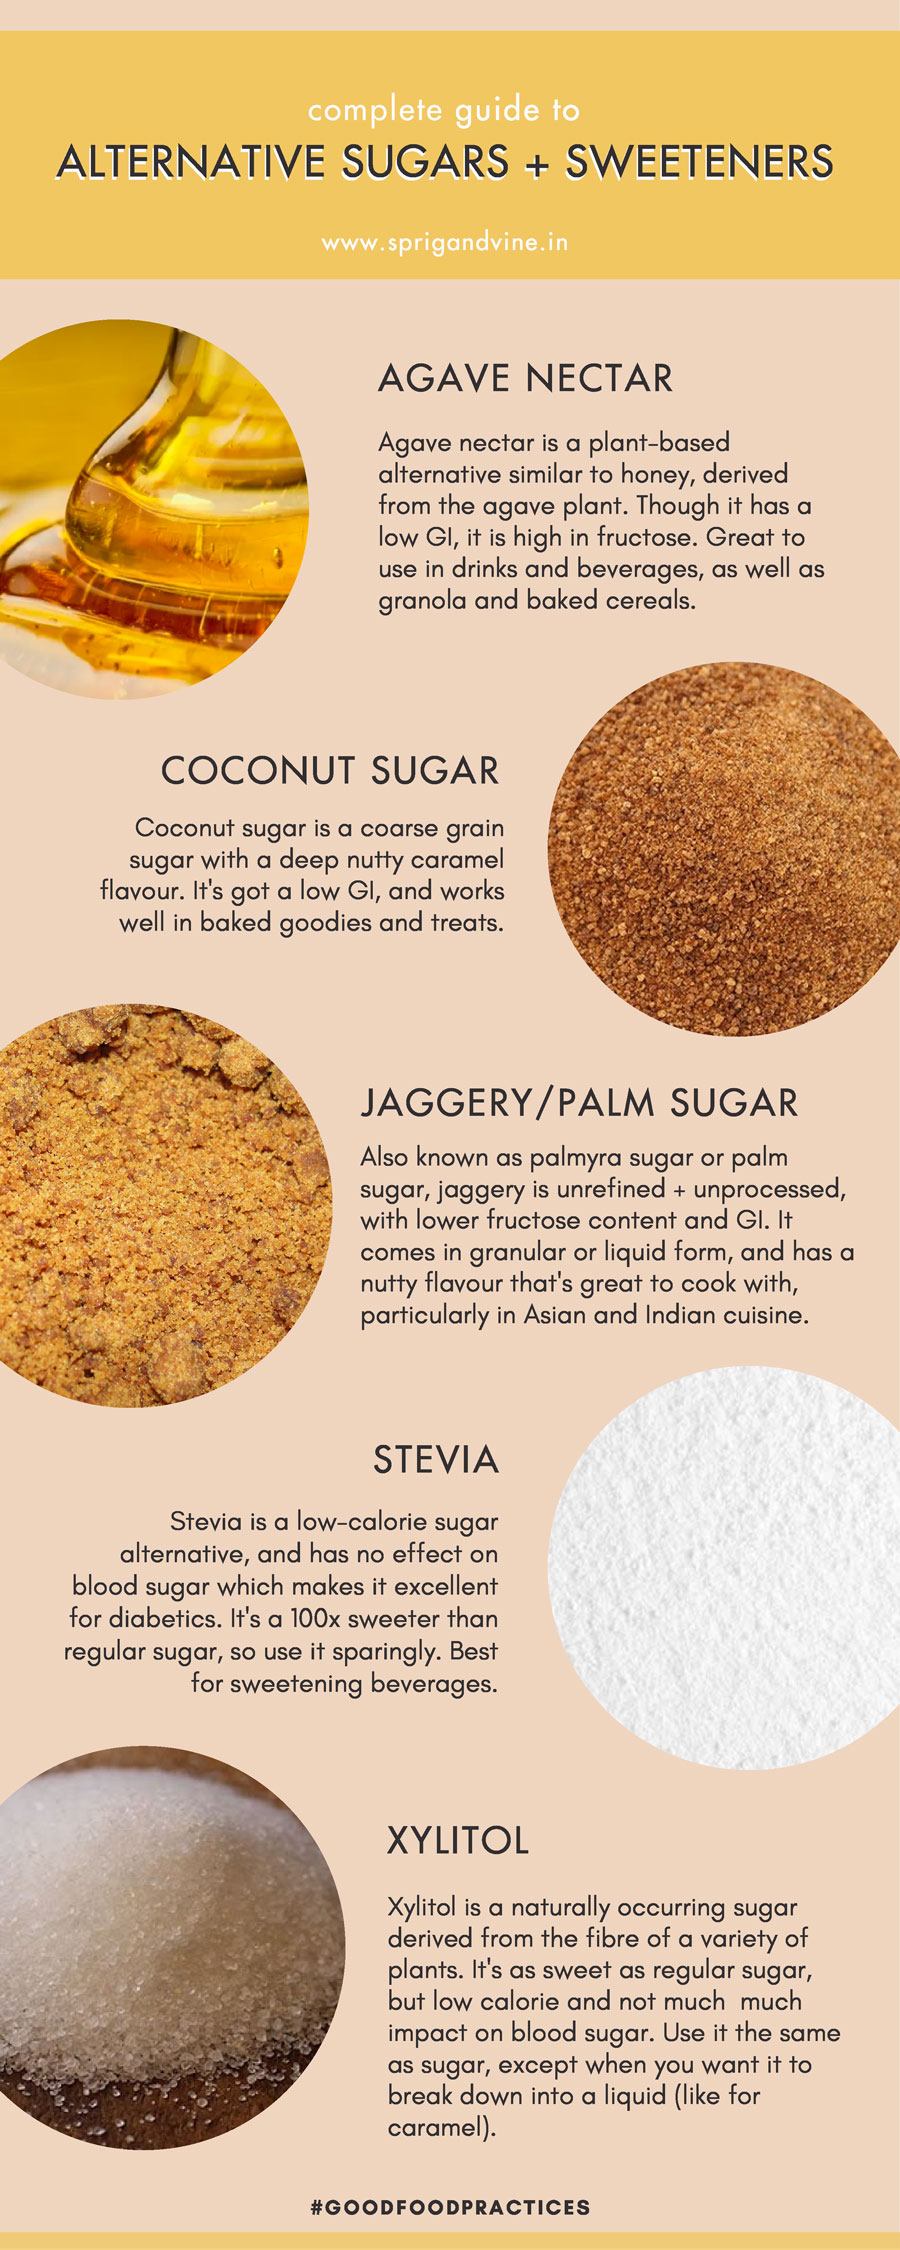 Guide to Alternative Sugars and Sweeteners - Sprig & Vine